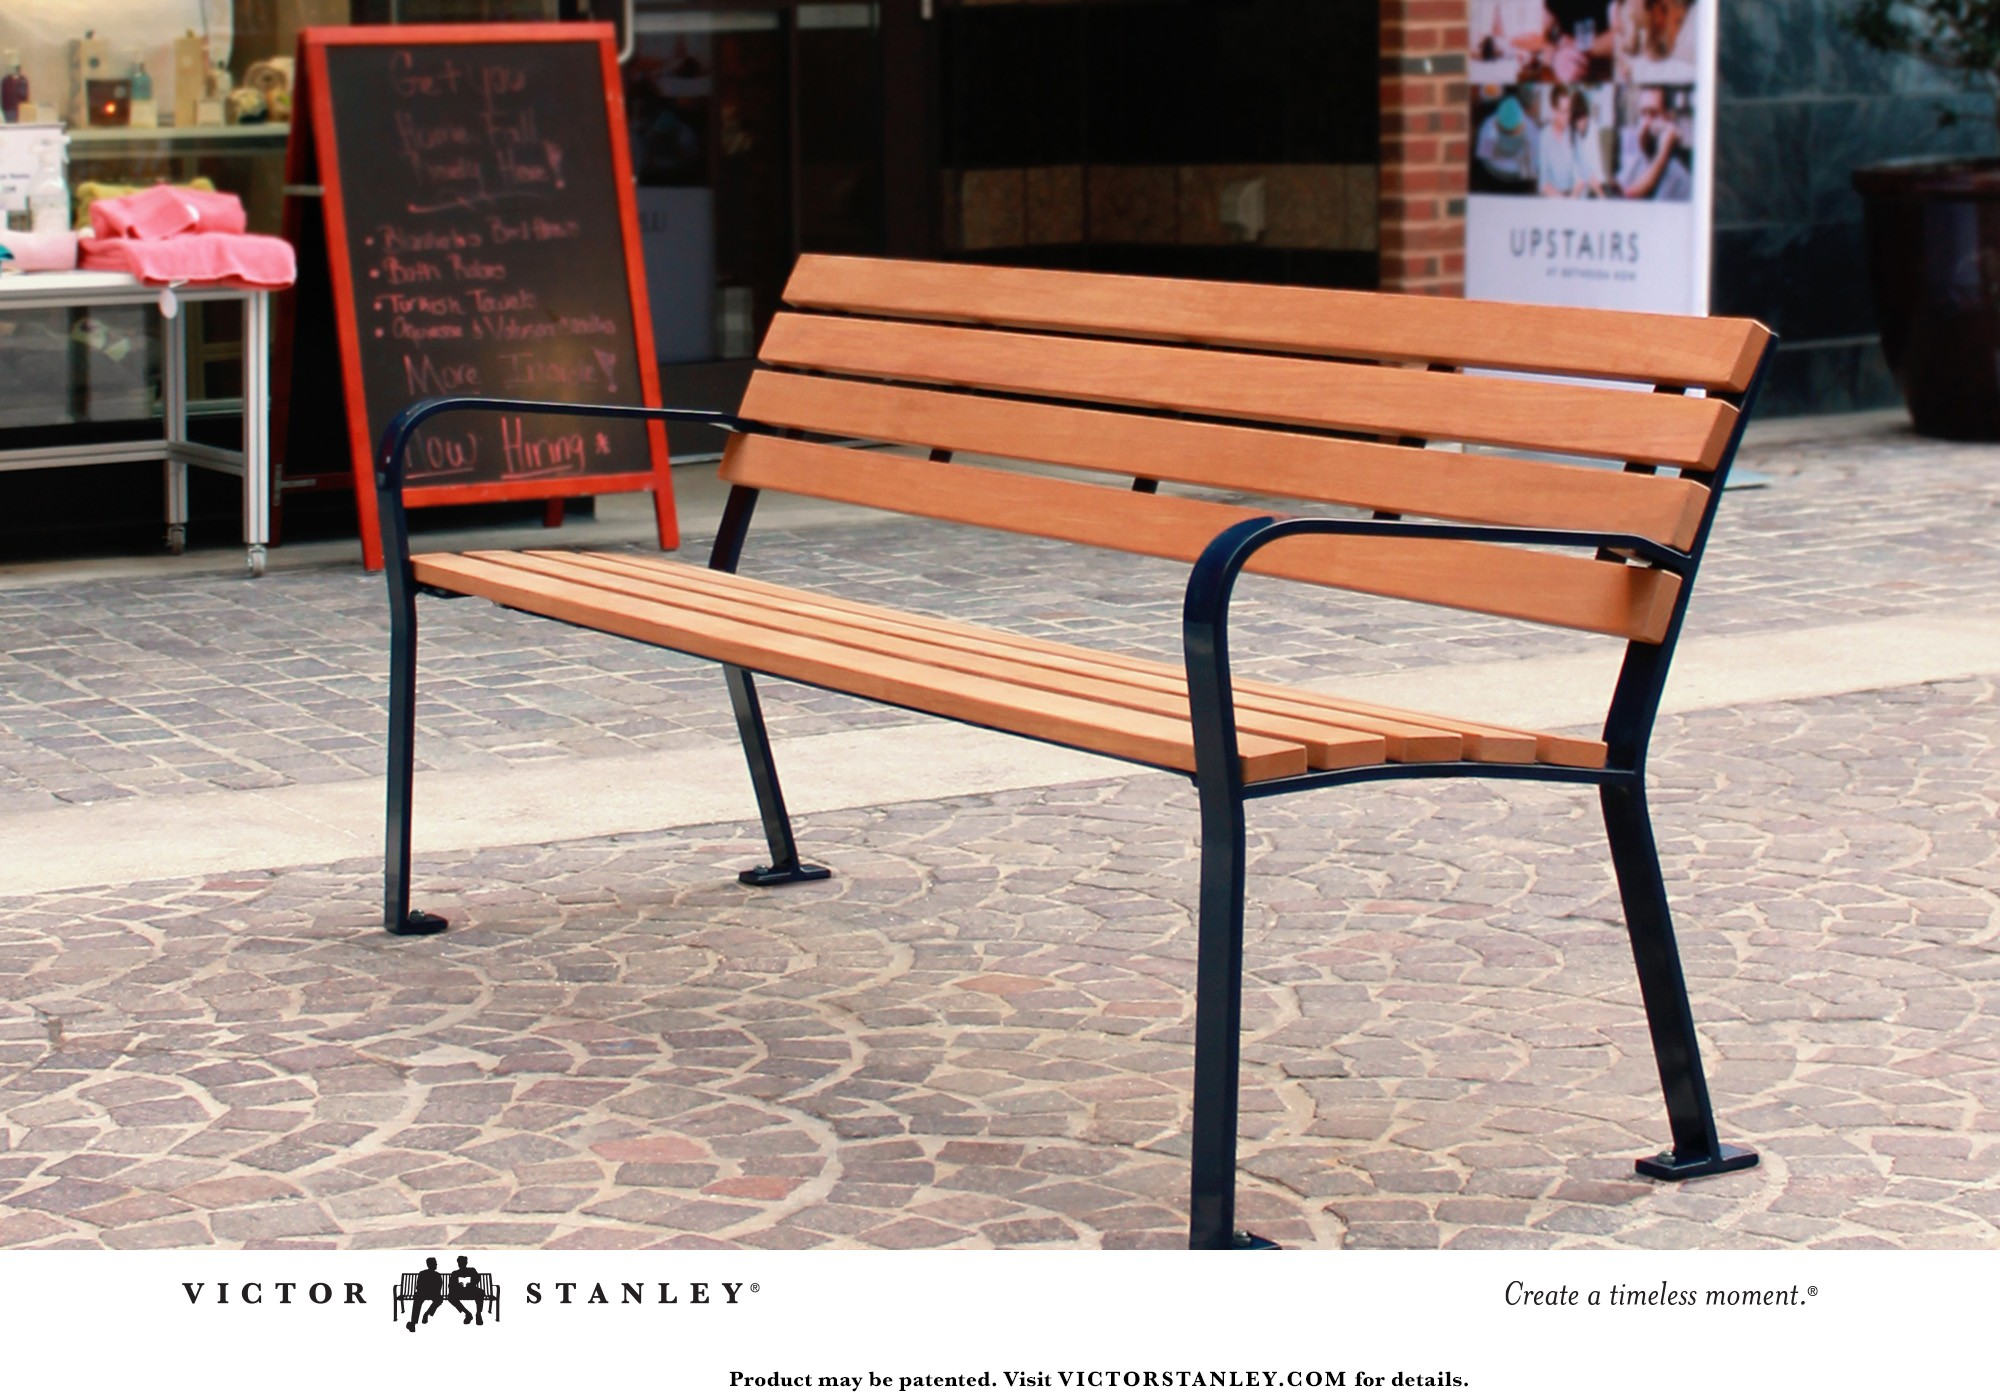 rbw-28 | victor stanley | site furniture